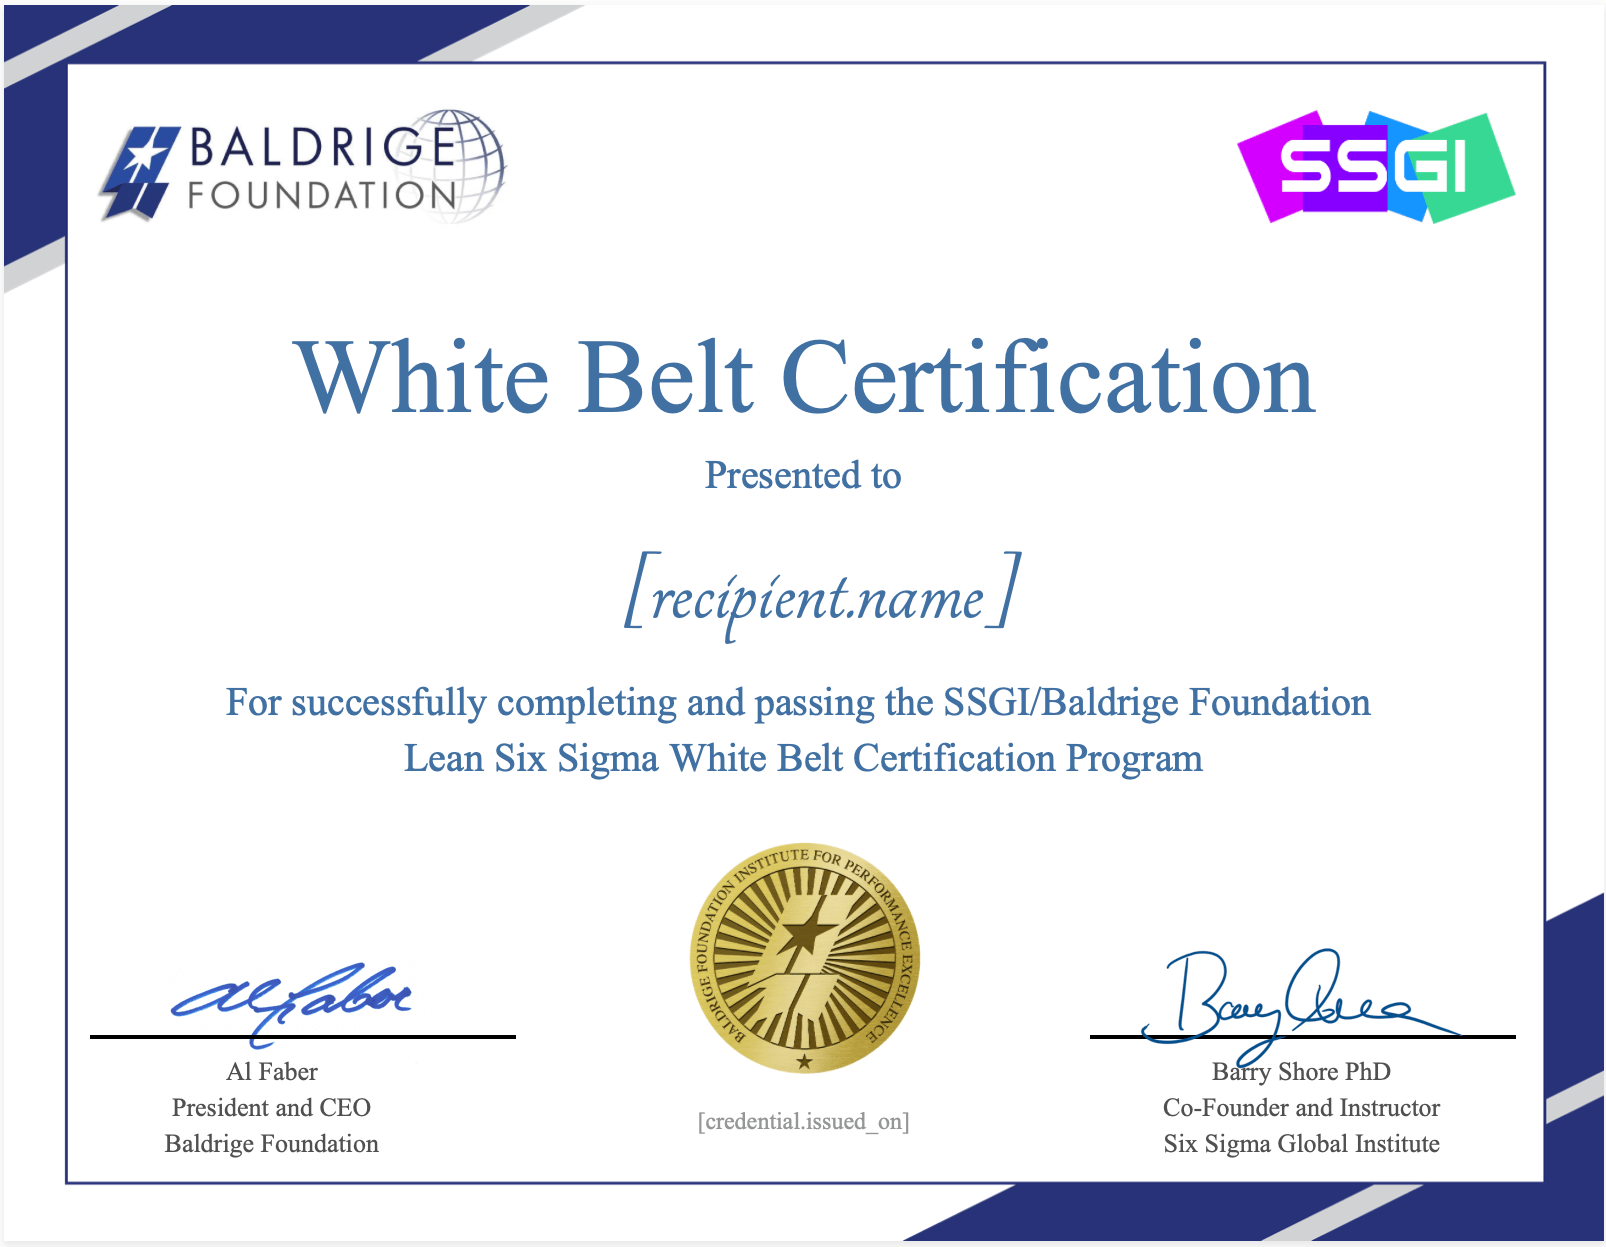 white belt baldrige foundation ssgi